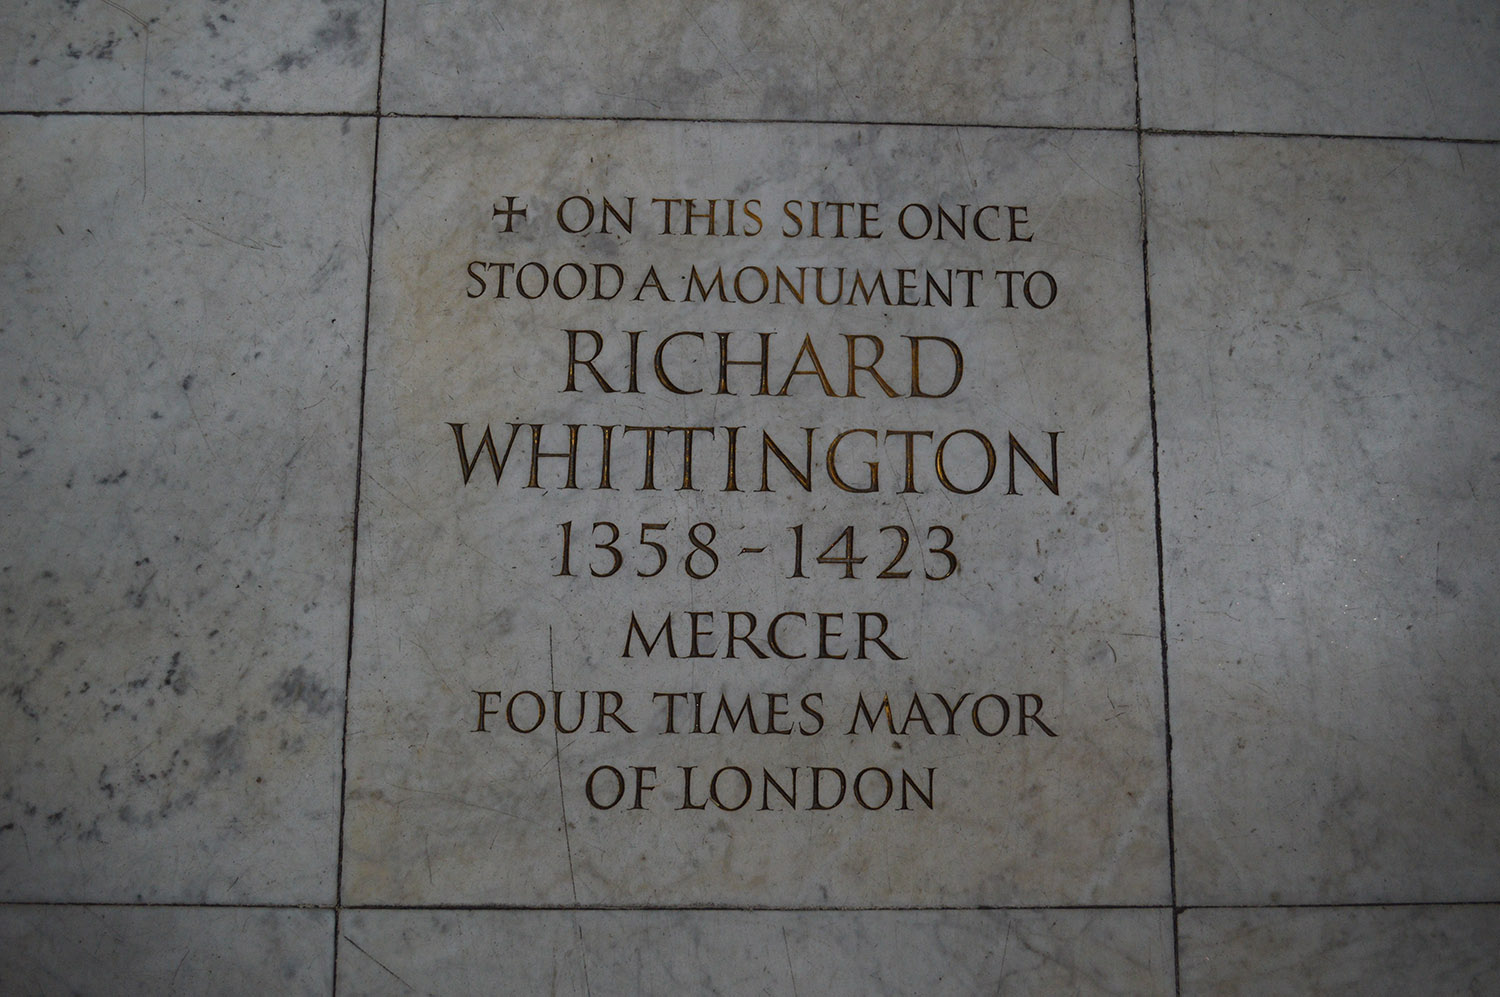 A floorstone marking the site of the tomb of Richard 'Dick' Whittington at St Michael Paternoster Royal